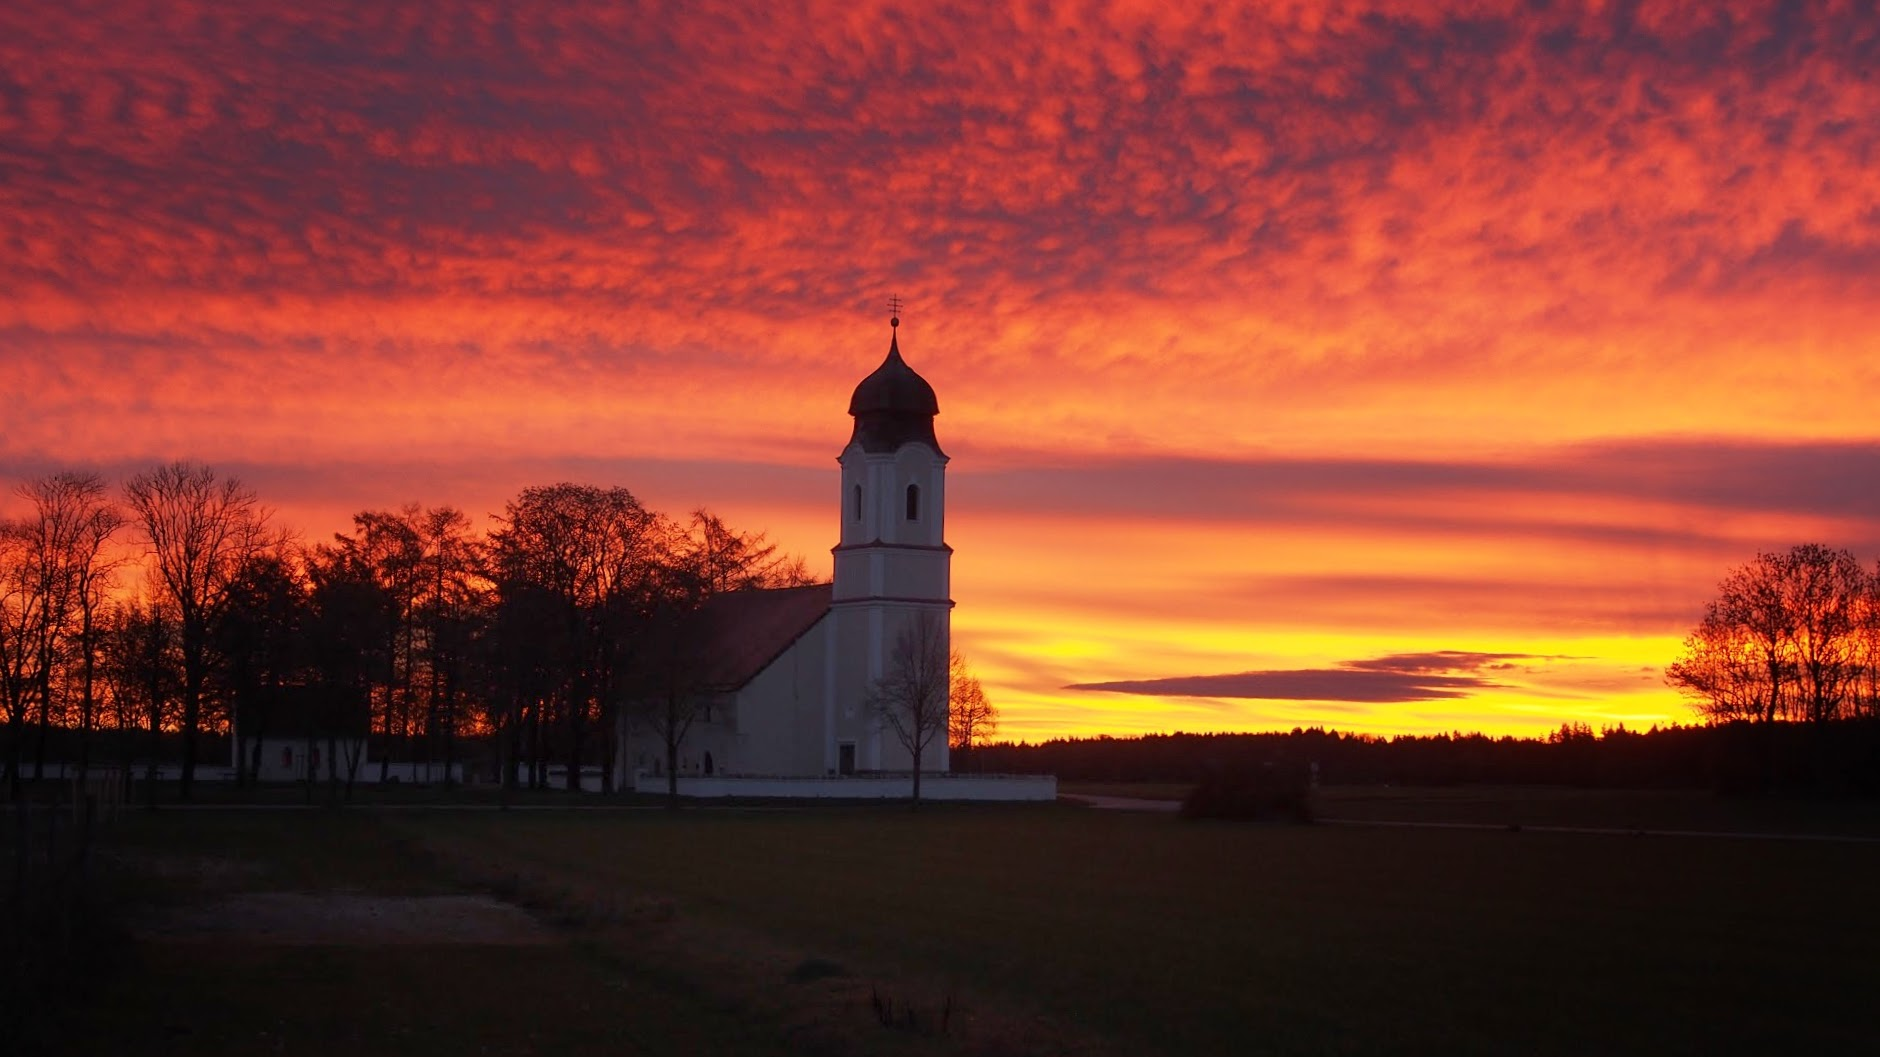 Sunrise by Föhn - Leonhardi-Kirche